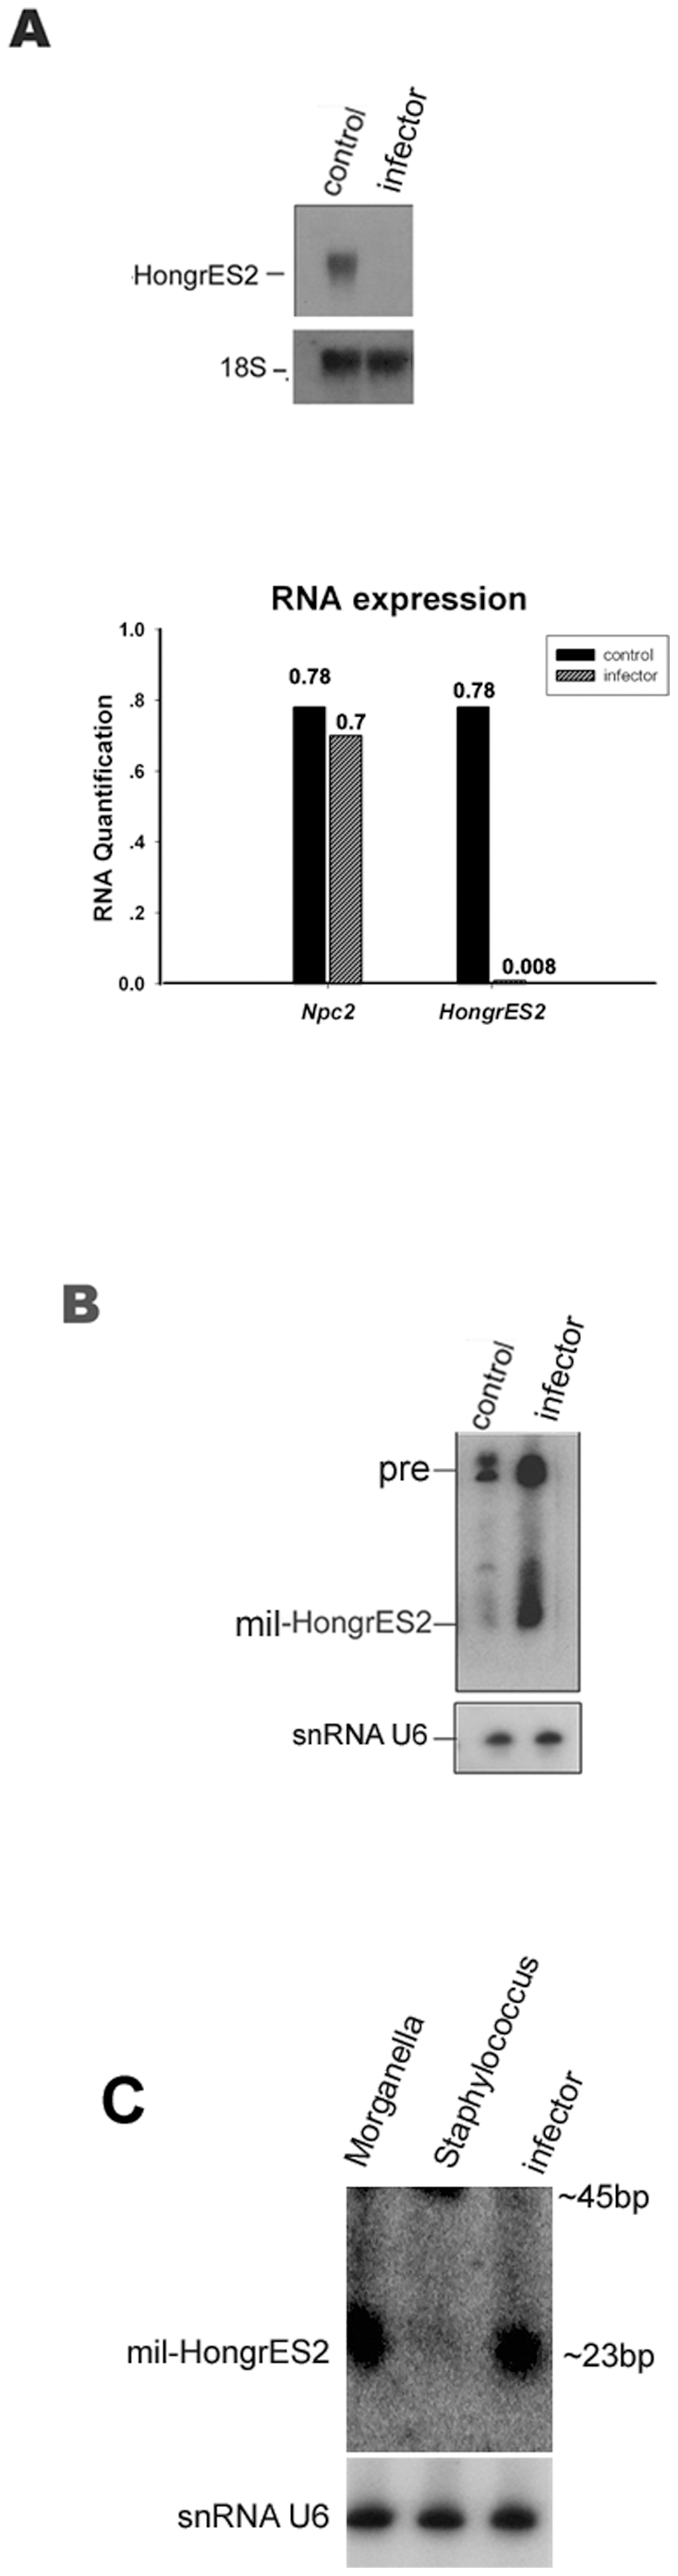 Over-expression of mil-HongrES2 caused by inflammation of the rat epididymitis. ( A ) The upper panel showed Northern blot analysis of the RNA expression of HongrES2 .18S rRNA was used as the loading control. The lower panel was the Real-time PCR analysis of Ncp2 besides HongrES2 . ( B,C ) Northern blot analysis to detect the mil-HongrES2 expression. U6 probe was used on the stripped membrane as an internal loading control.